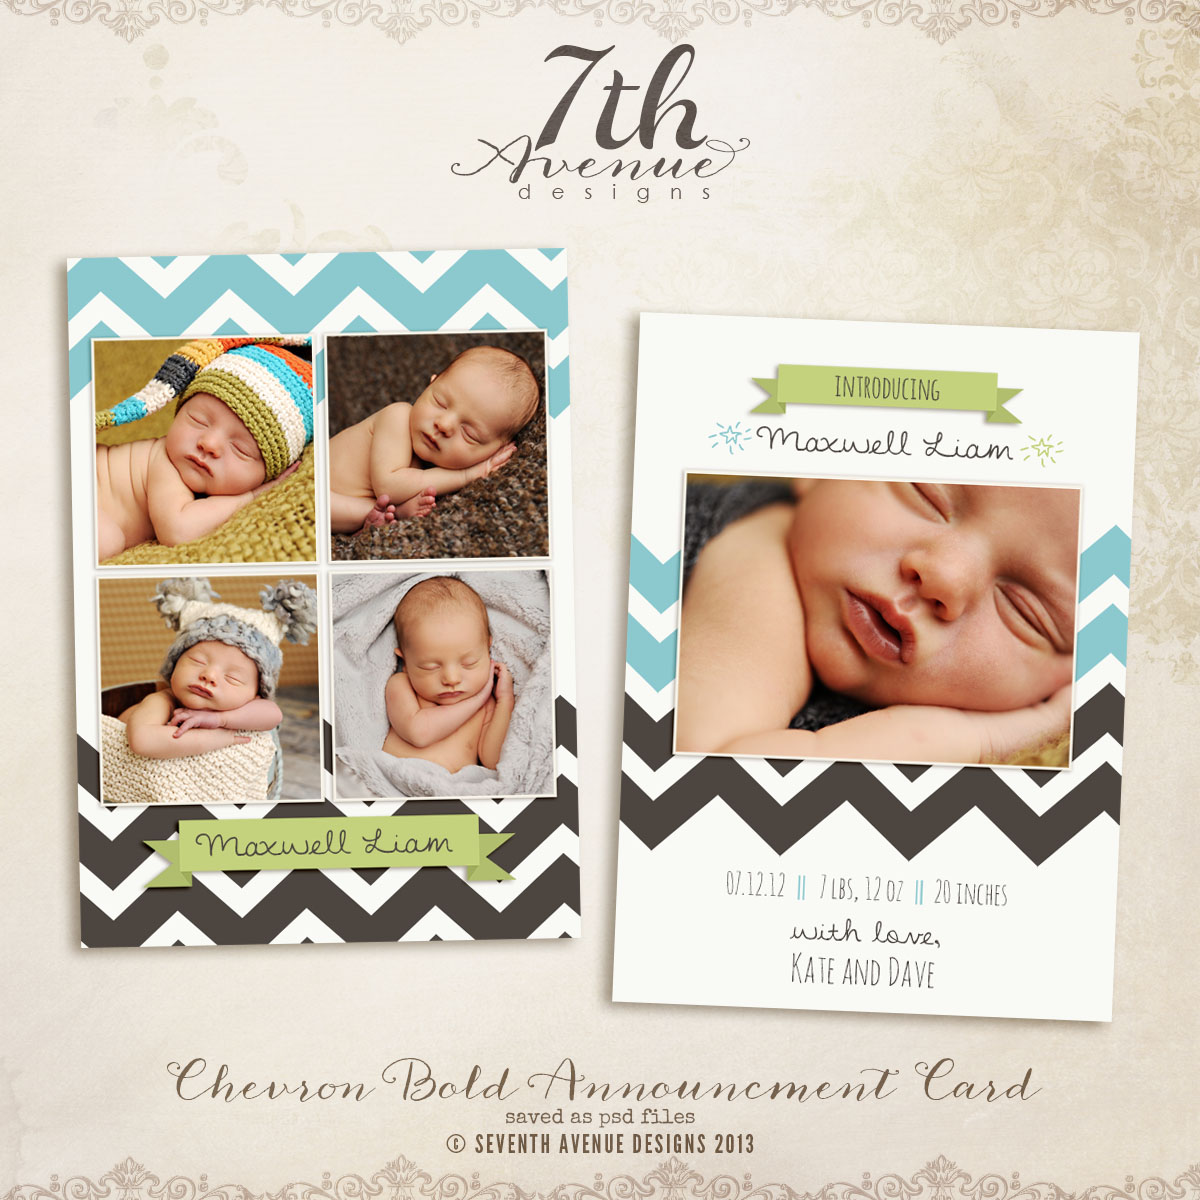 FREE Overlays freeoverlays Its Free 7thAvenue Designs – Baby Announcement Cards Template Free